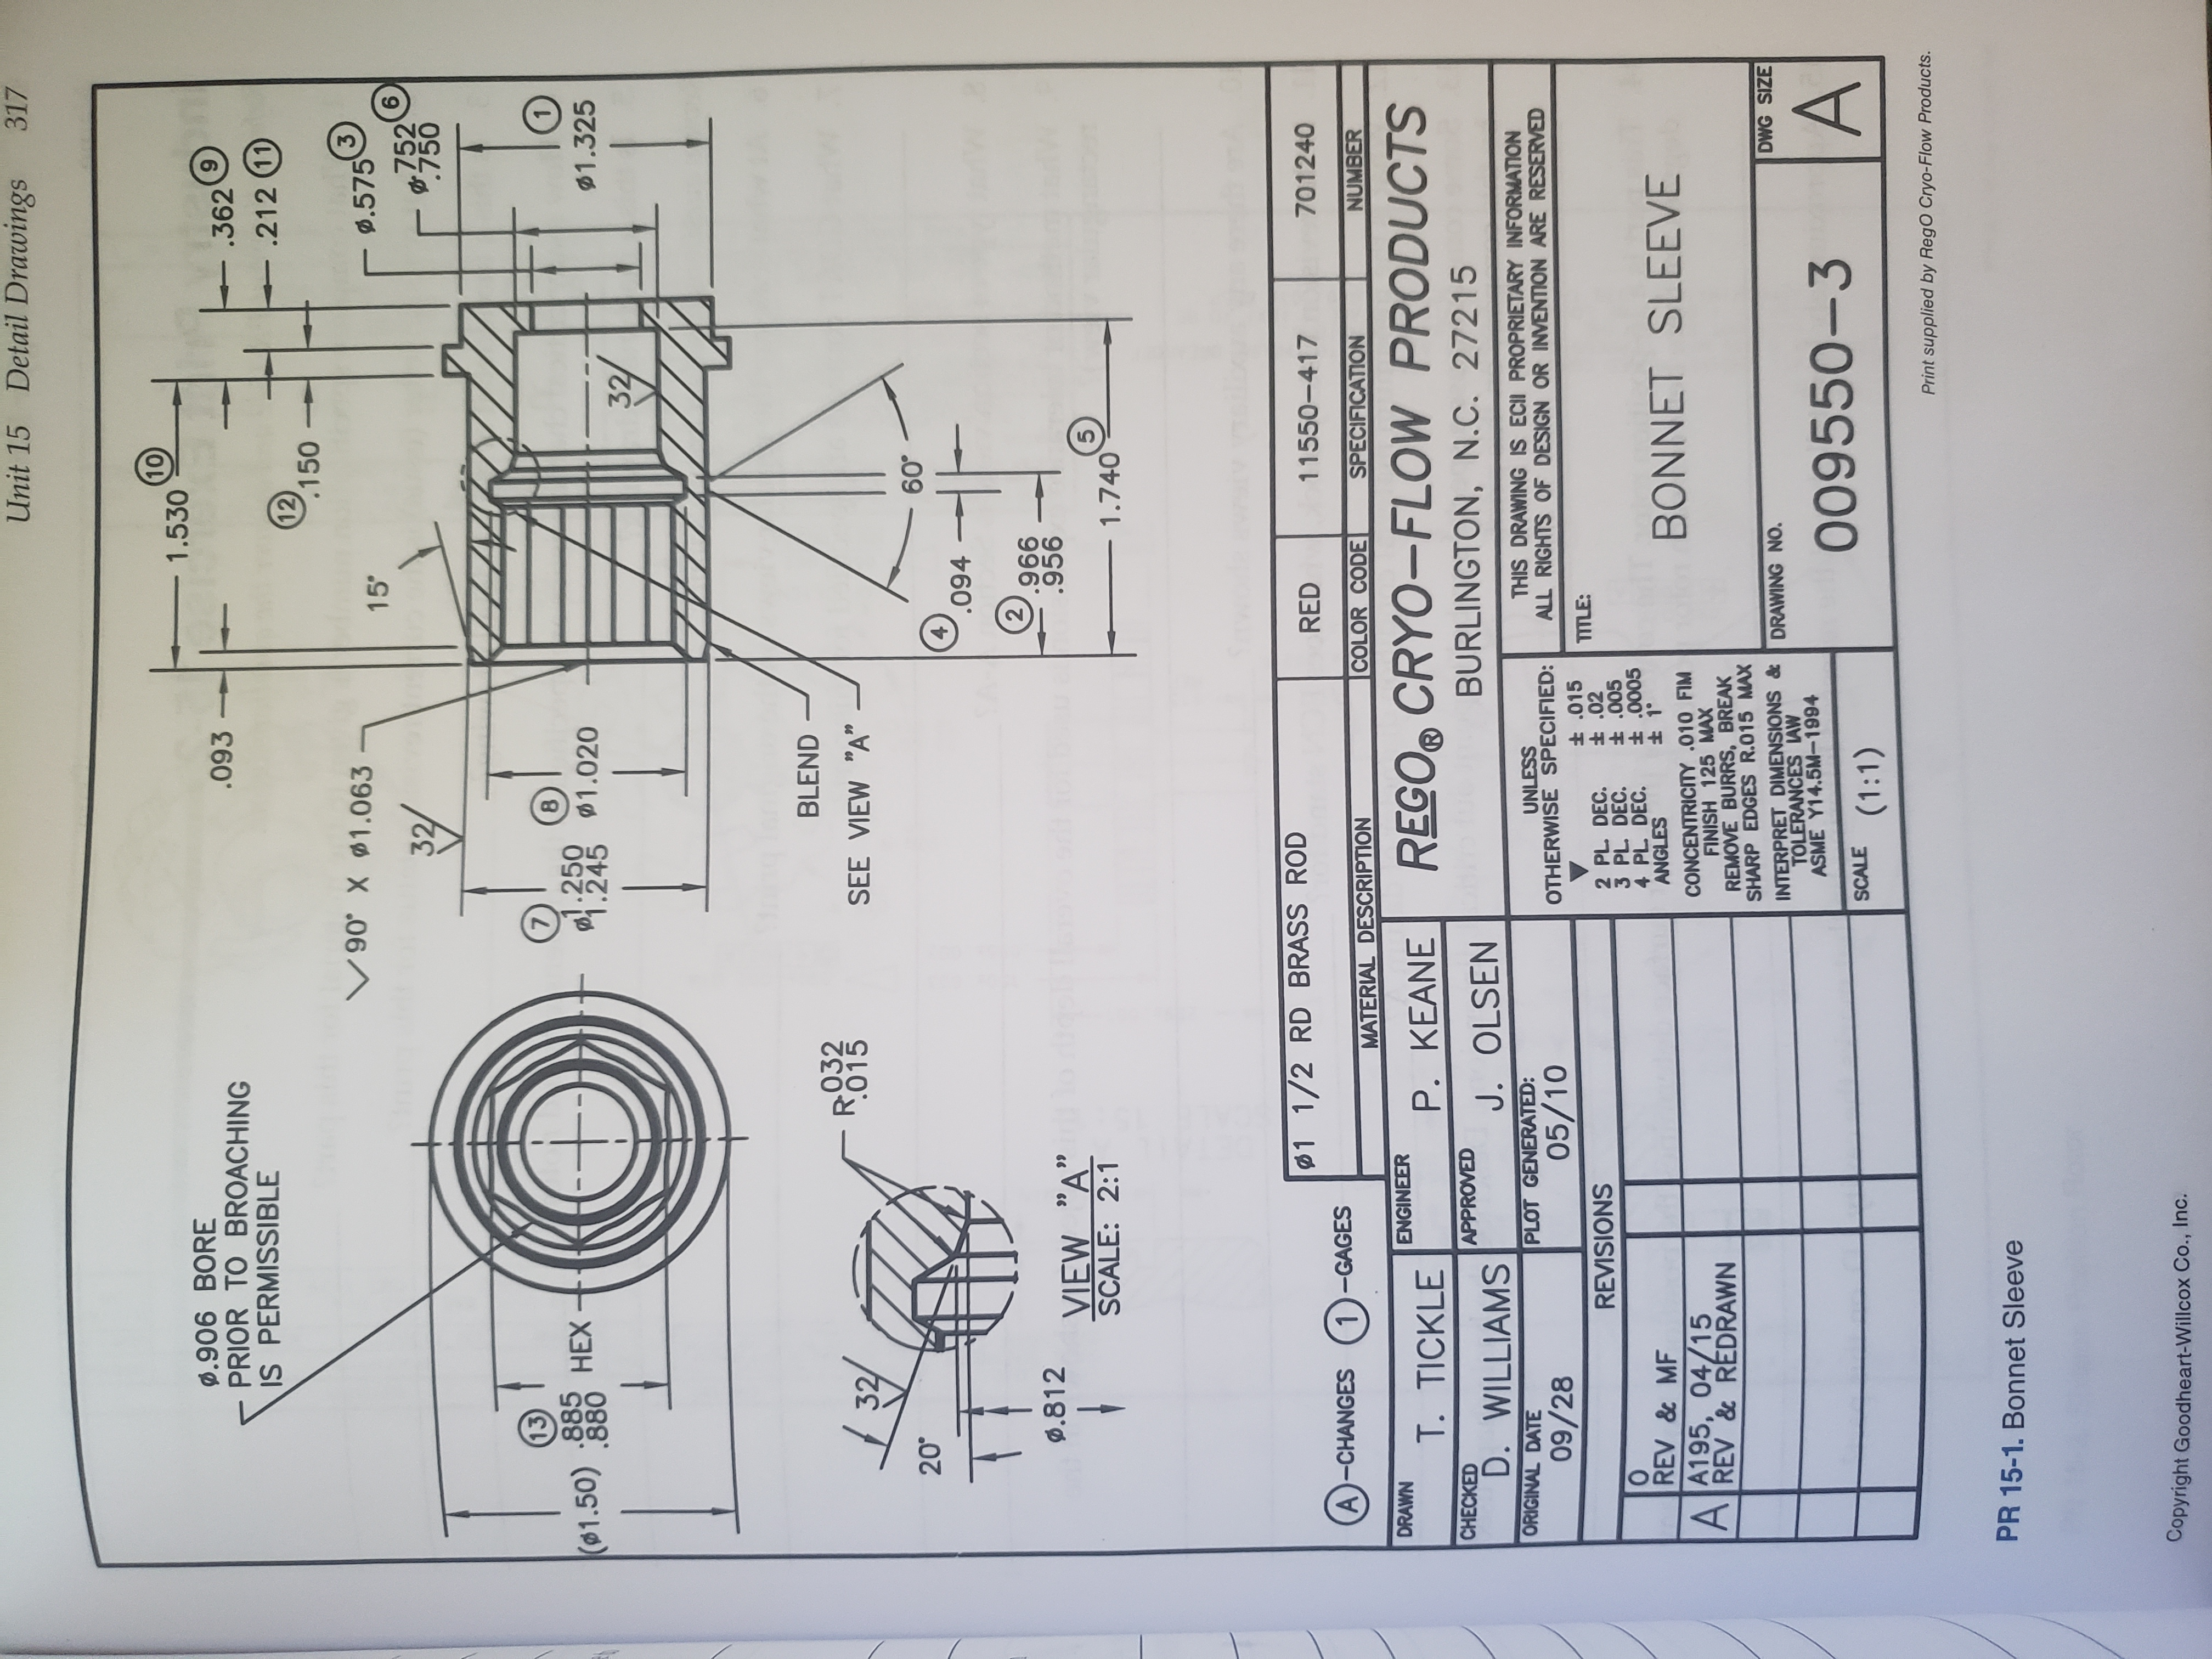 "Detail Drawings Unit 15 317 10 1.530 Ø.906 BORE PRIOR TO BROACHING IS PERMISSIBLE .093 .362 212 (11 12 .150 90 X 1.063 3 ø.575 6 15 32/ 752 .750 13 7 8 1.250 1.245 .885 .880 НЕХ (61.50) 1.020 $1.325 32/ BLEND 032 015 SEE VIEW ""A"" 20° 60 4 .094 TT 2 .966 .956 .812 VIEW ""A"" SCALE: 2:1 99 5 1.740 1 1/2 RD BRASS ROD RED 11550-417 701240 A)-CHANGES 1-GAGES COLOR CODE MATERIAL DESCRIPTION SPECIFICATION NUMBER DRAWN ENGINEER REGO® CRYO-FLOW PRODUCTS T. TICKLE P.KEANE CHECKED APPROVED BURLINGTON, N.C. 27215 D. WILLIAMS J. OLSEN ORIGINAL DATE PLOT GENERATED: THIS DRAWING IS ECII PROPRIETARY INFORMATION ALL RIGHTS OF DESIGN OR INVENTION ARE RESERVED UNLESS OTHERWISE SPECIFIED: 05/10 09/28 t .015 t 02 t .005 t .0005 t 1 TIMLE: REVISIONS 2 PL DEC. 3 PL DEC. 4 PL DEC. ANGLES REV & MF A195, 04/15 REV&REDRAWN BONNET SLEEVE CONCENTRICITY .010 FIM FINISH 125 MAX REMOVE BURRS, BREAK SHARP EDGES R.015 MAX INTERPRET DIMENSIONS & TOLERANCES AW ASME Y14.5M-1994 DWG SIZE DRAWING NO. A 009550-3 SCALE (1:1) Print supplied by RegO Cryo-Flow Products. PR 15-1. Bonnet Sleeve Copyright Goodheart-Willcox Co., Inc."